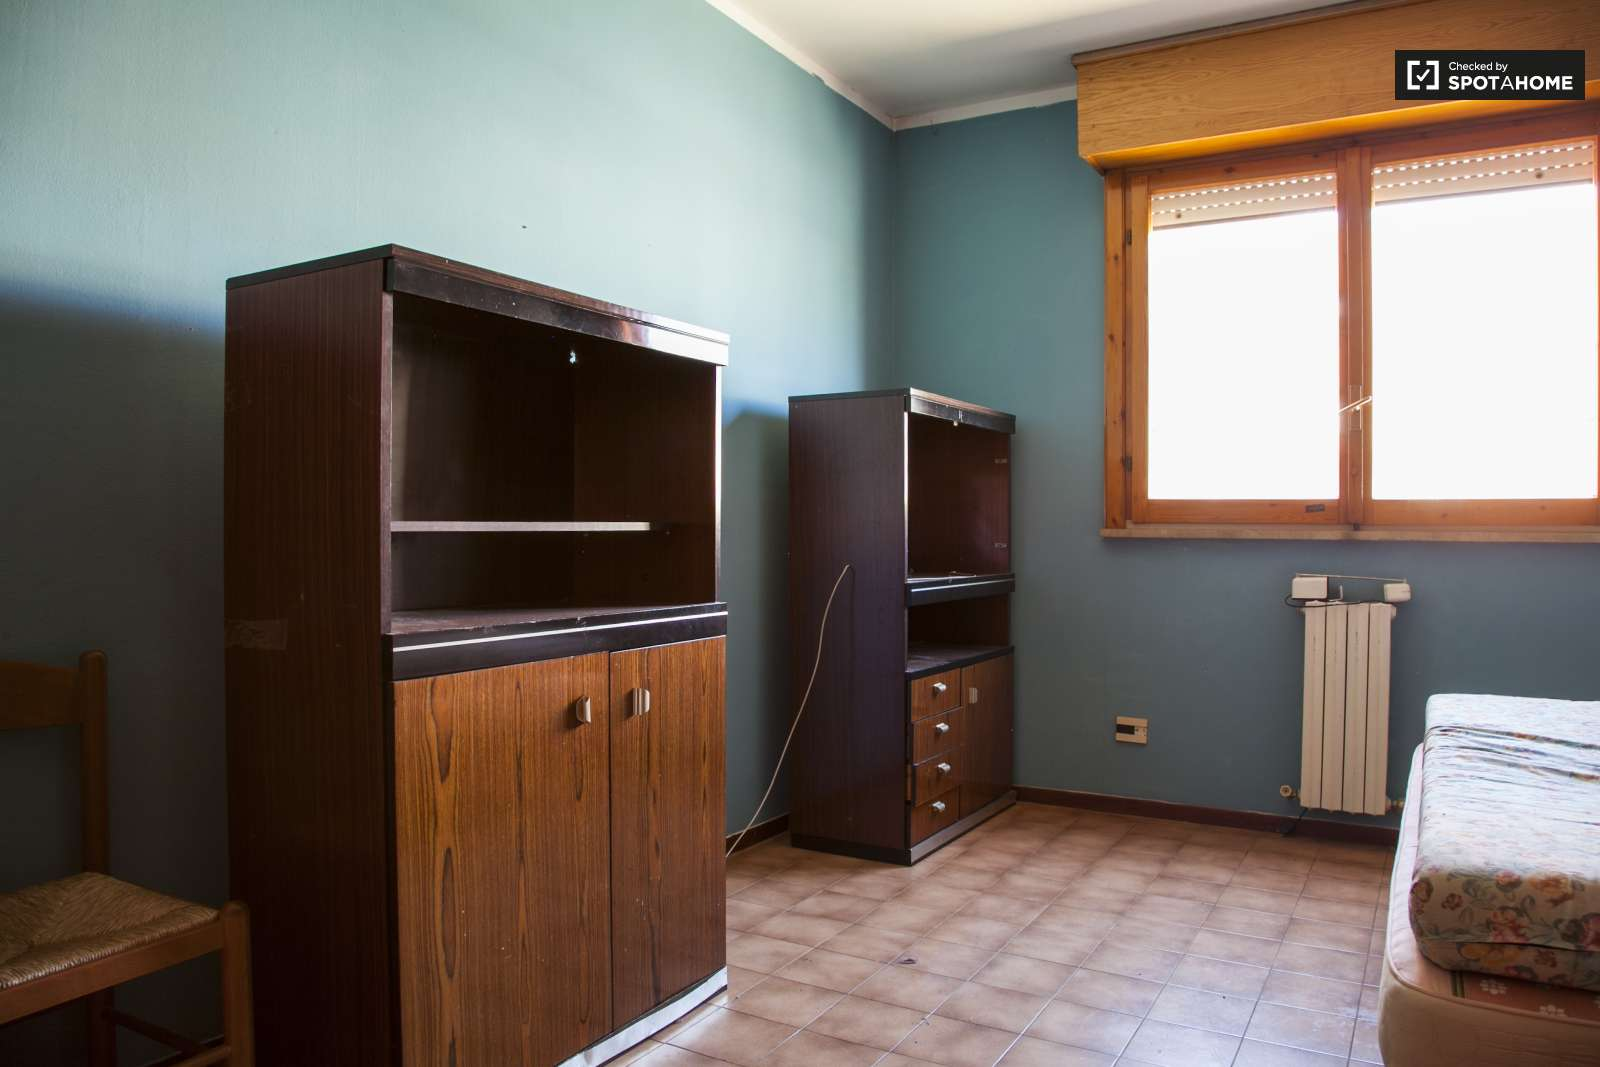 Equipped shared room with storage in 4-bedroom apartment in Magliana, Rome